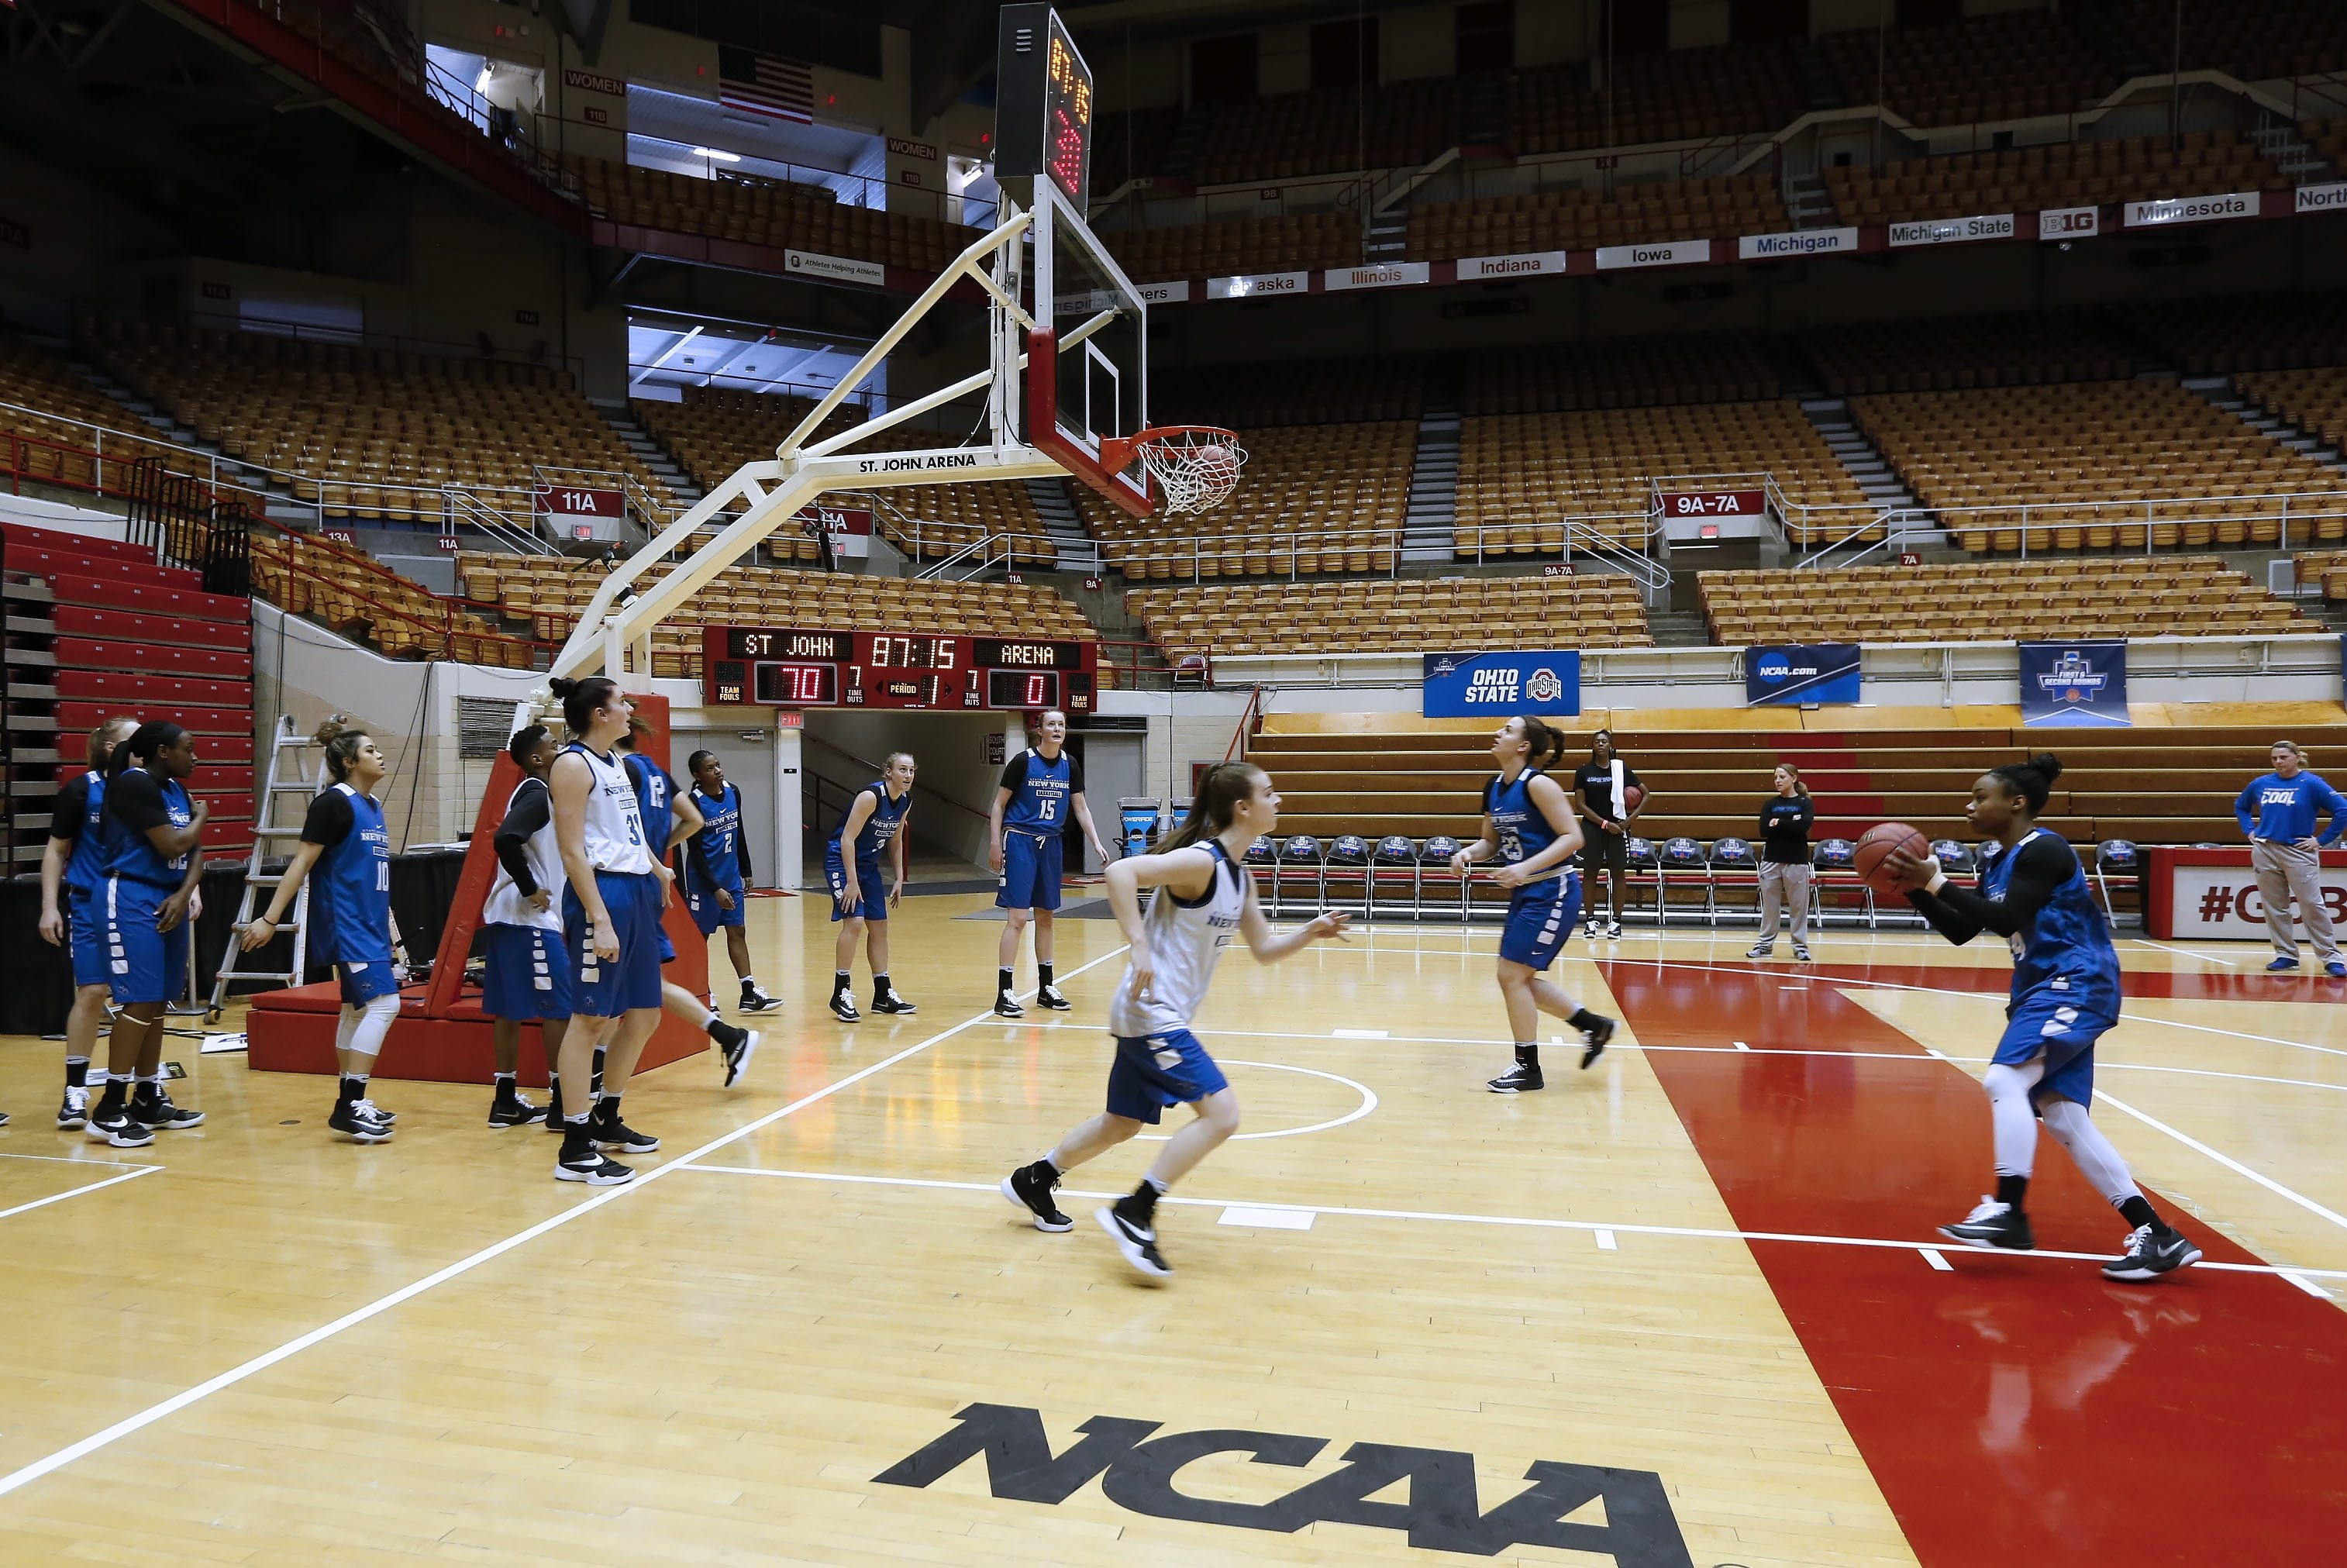 The University at Buffalo women's basketball team runs through final prepartions for its first-ever game in the NCAA Tournament, which comes Friday against Ohio State at St. John Arena.